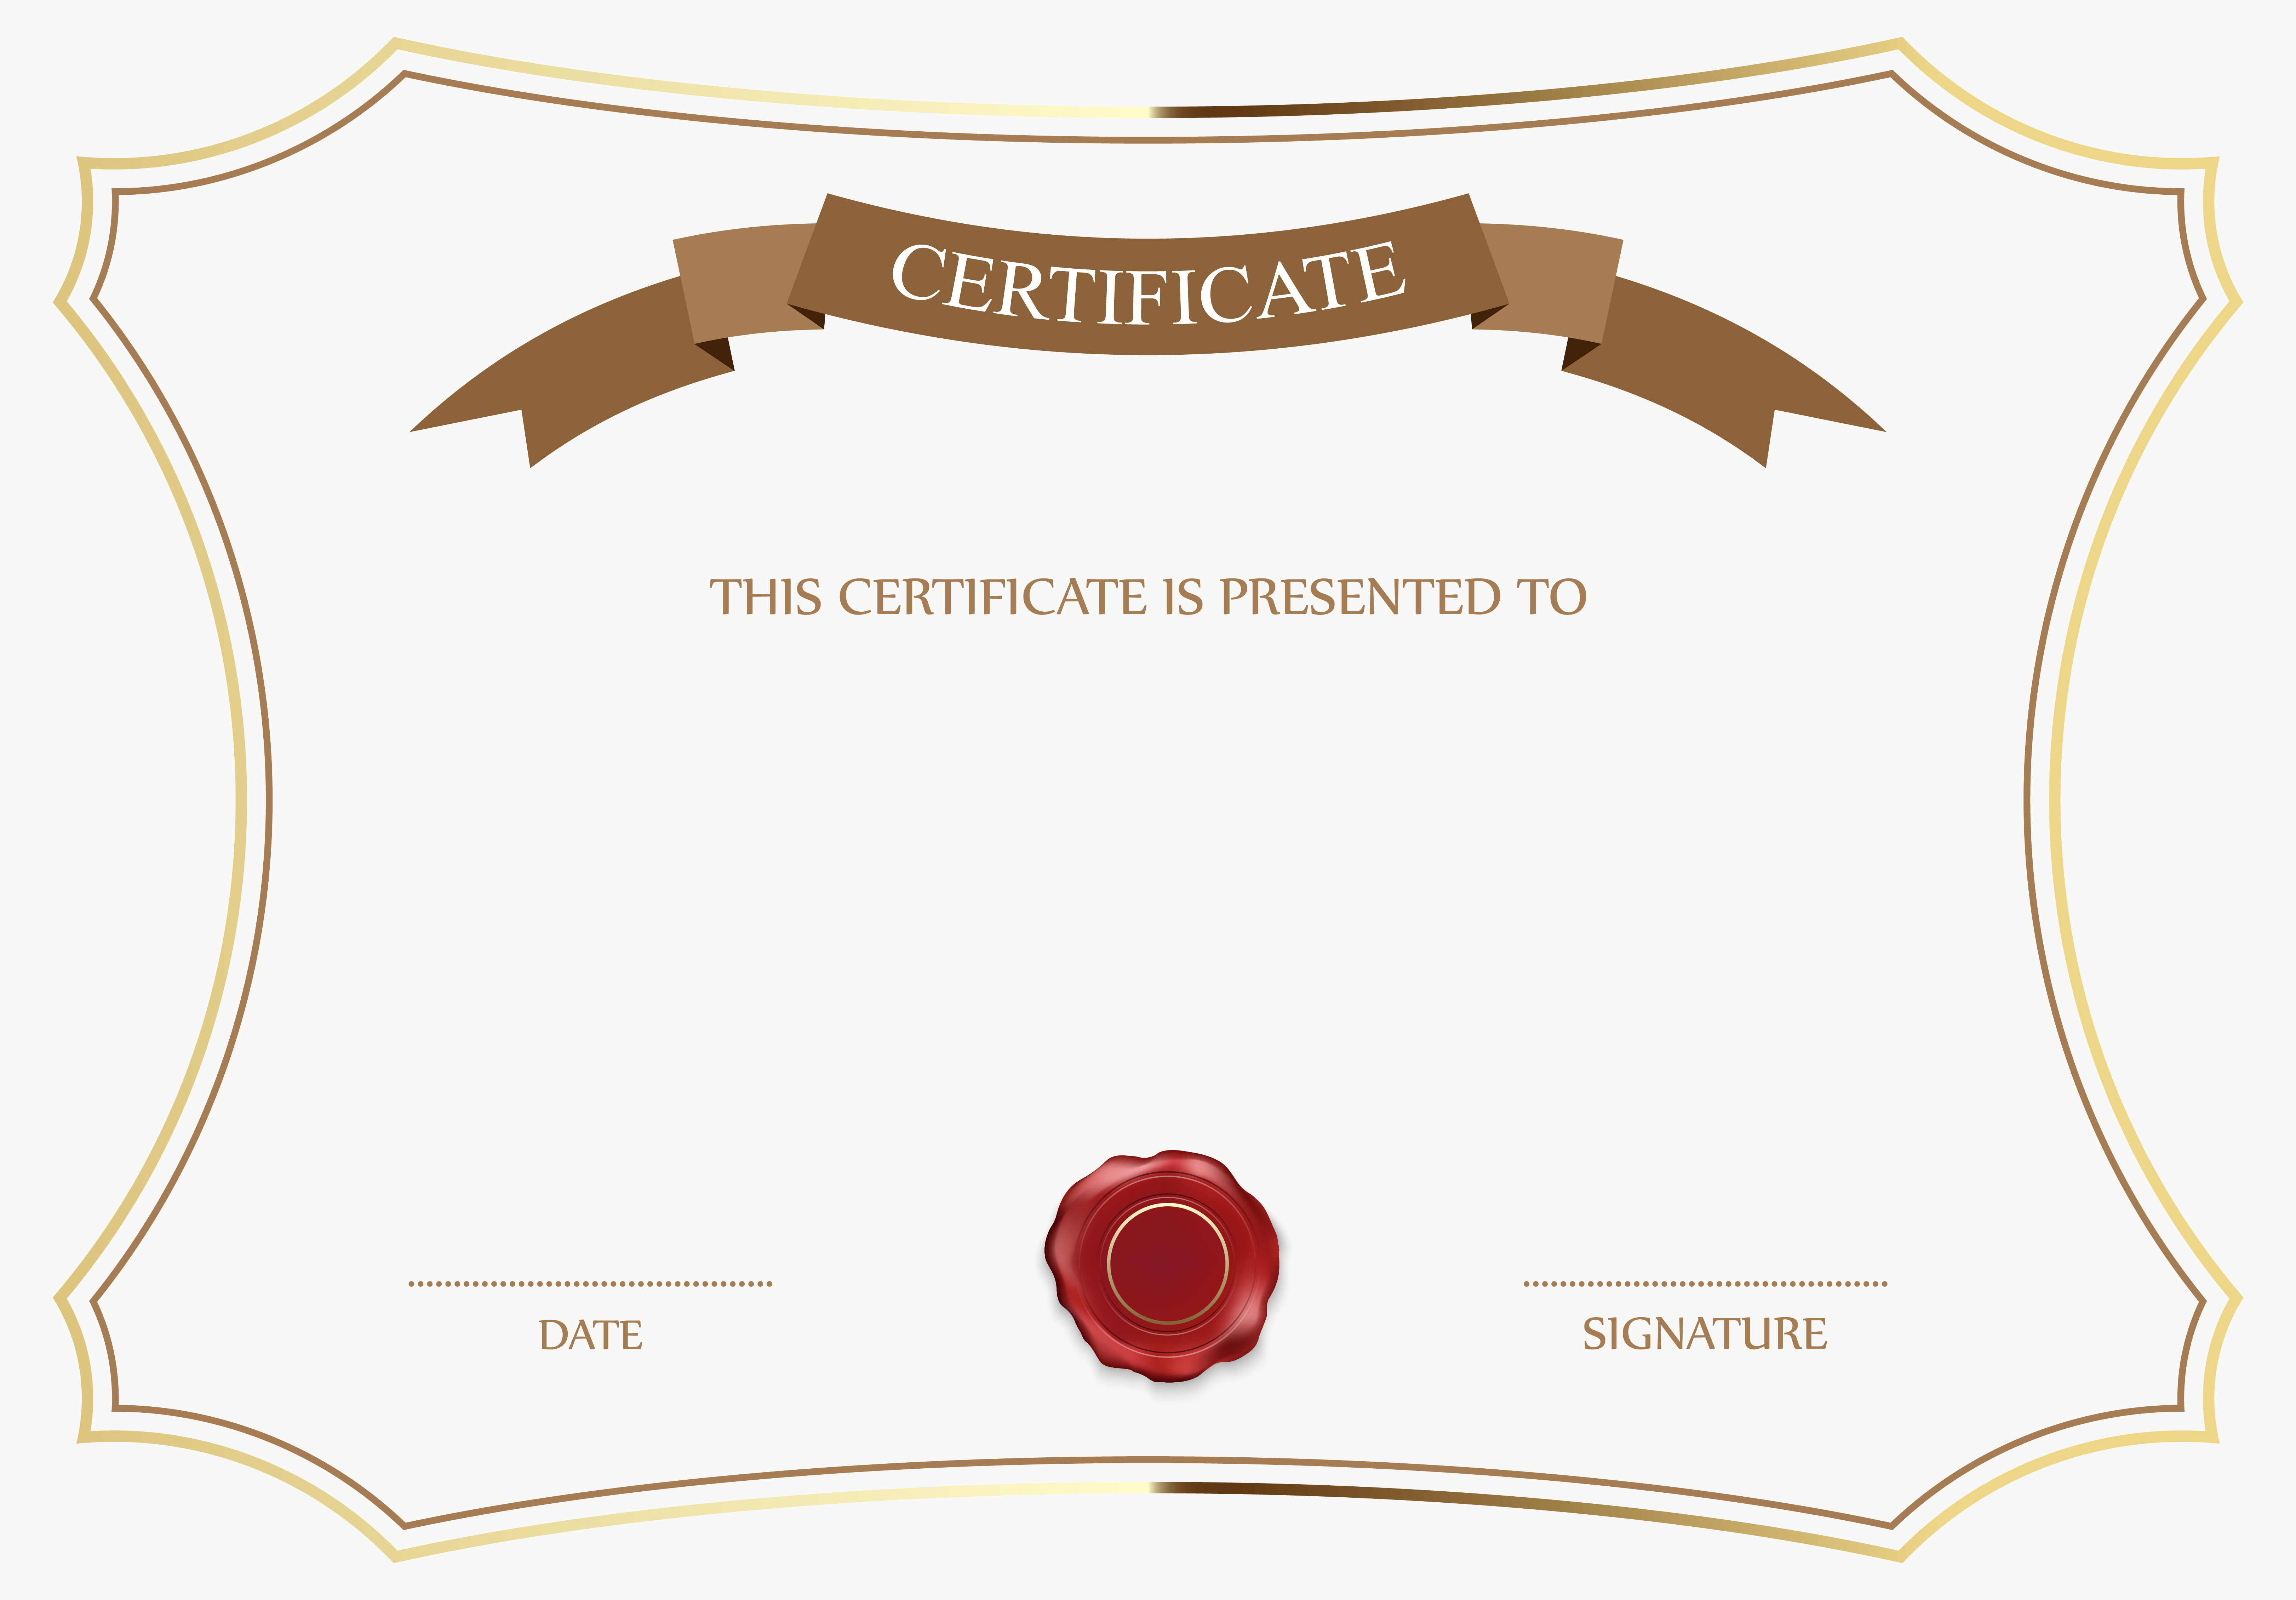 Templates  clipart cert View Template Image and size